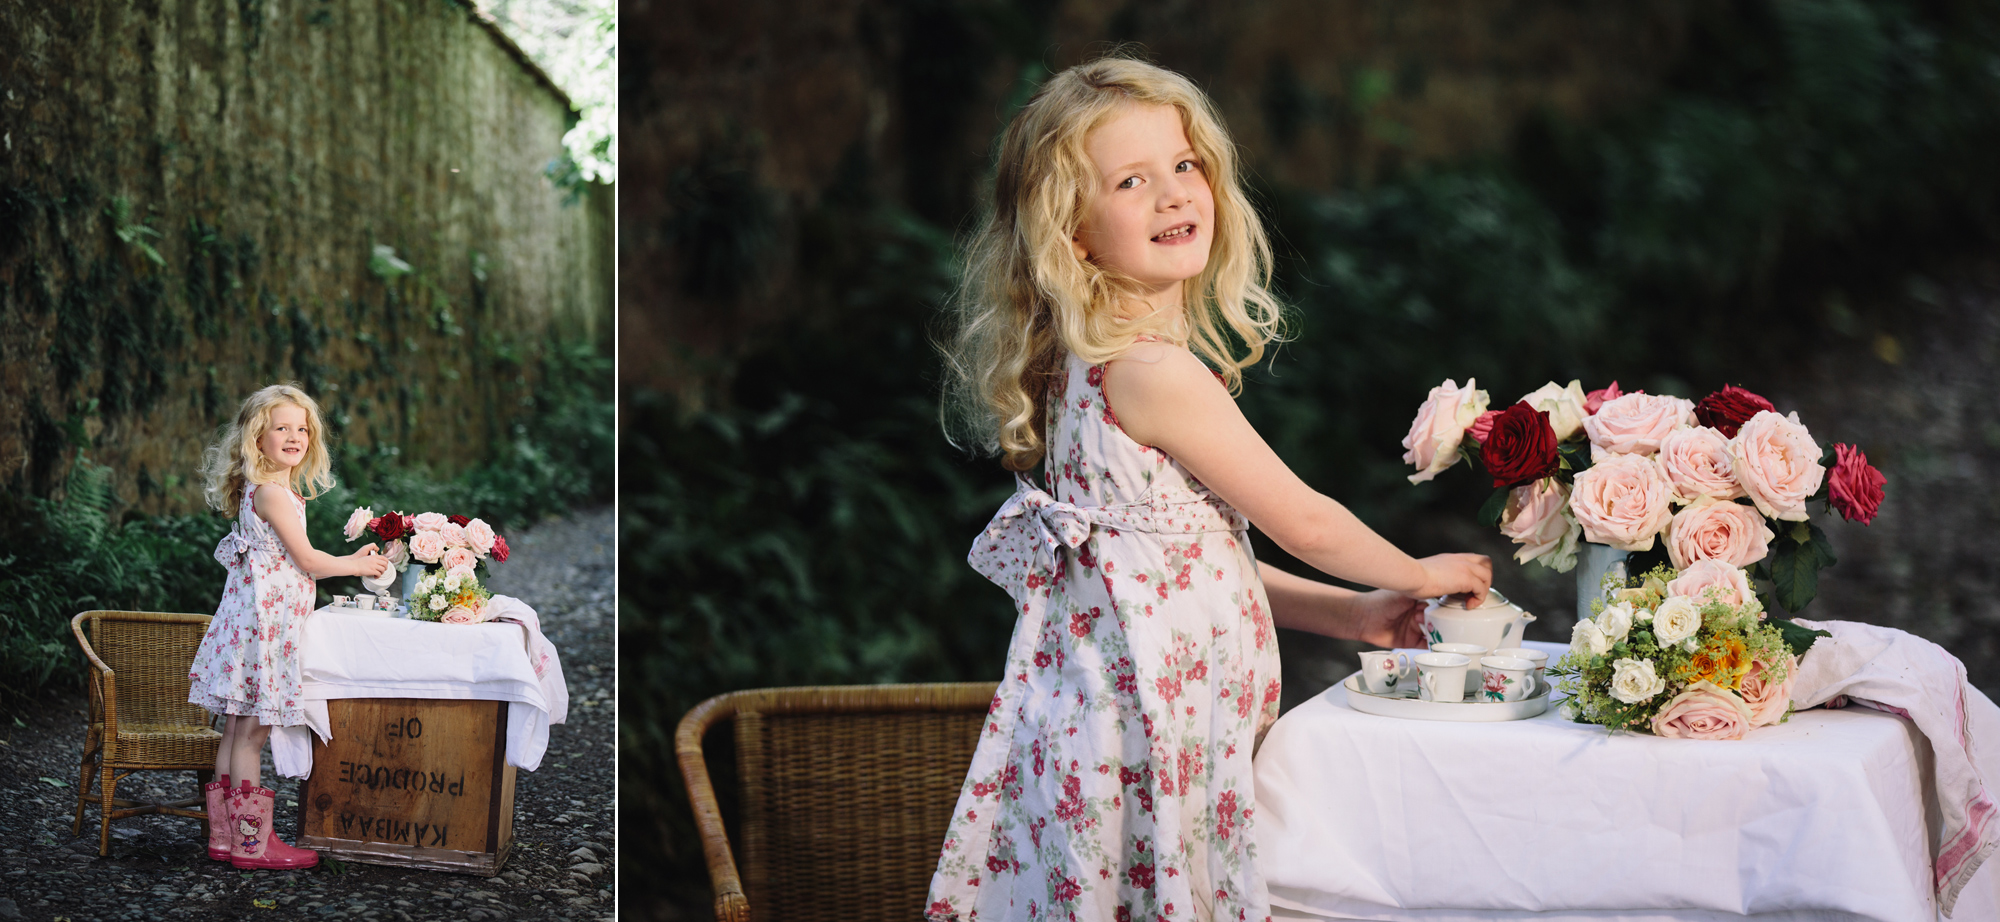 Hermione McCosh Photography - Children's portrait photographer - creative, natural portraits